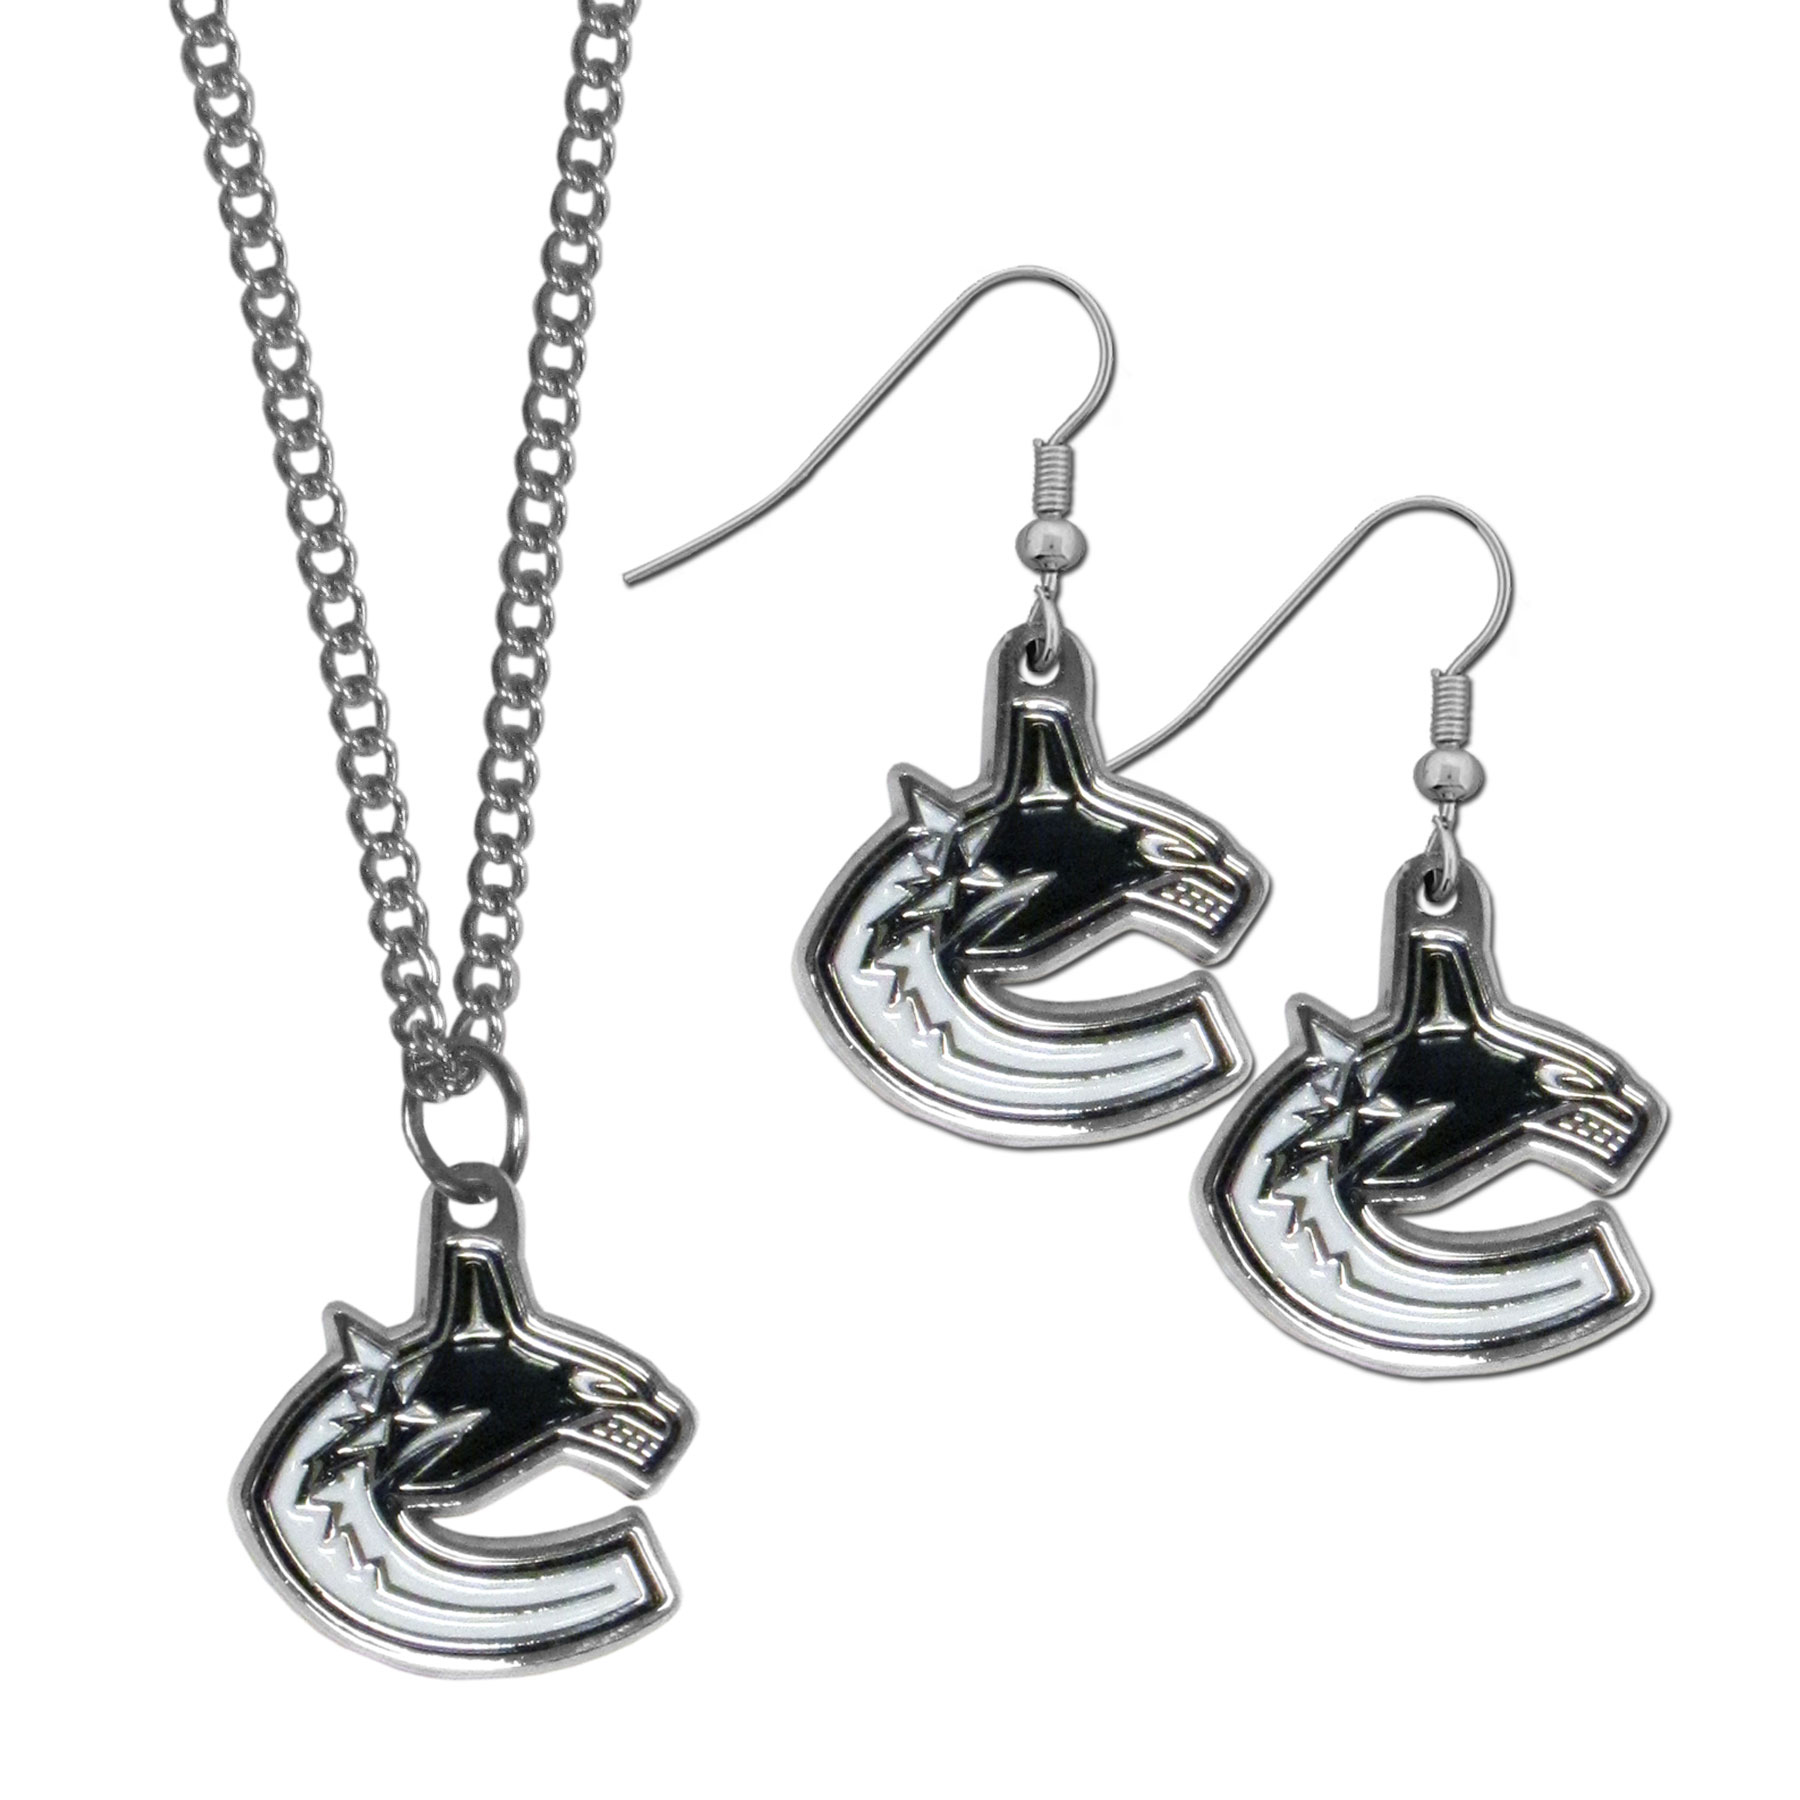 Vancouver Canucks® Dangle Earrings and Chain Necklace Set - This classic jewelry set contains are most popular Vancouver Canucks® dangle earrings and 22 inch chain necklace. The trendy, dangle earrings are lightweight and feature a fully cast metal team charm with enameled team colors. The matching necklace completes this fashion forward combo and is a spirited set that is perfect for game day but nice enough for everyday.